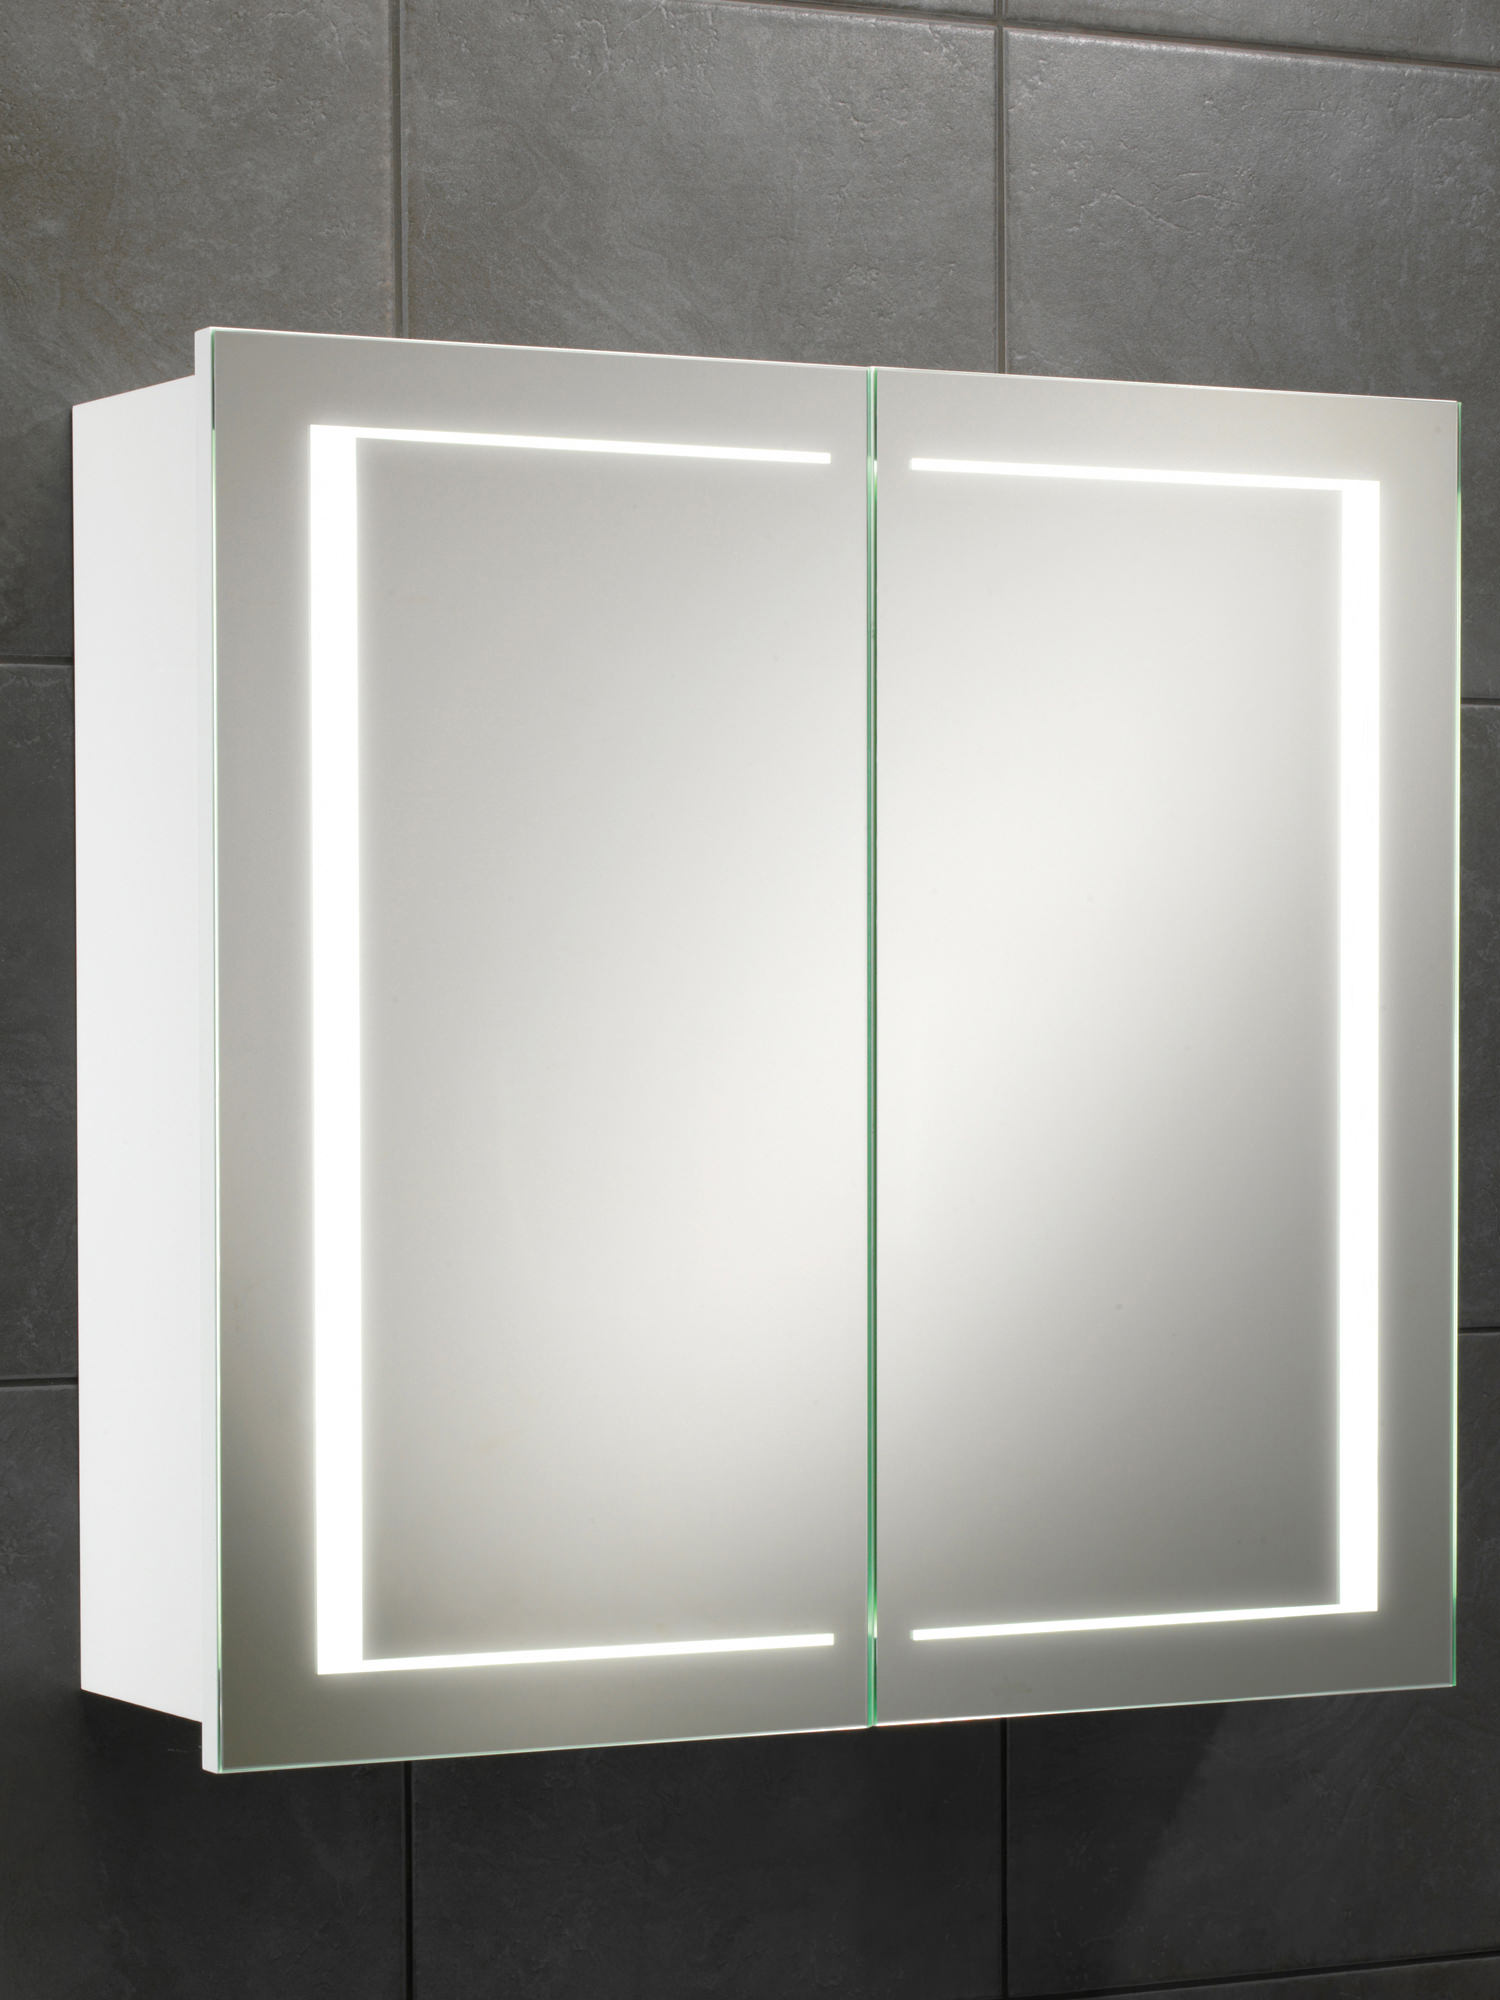 Hib colorado double door led back lit illuminated cabinet for Bathroom cabinet 700